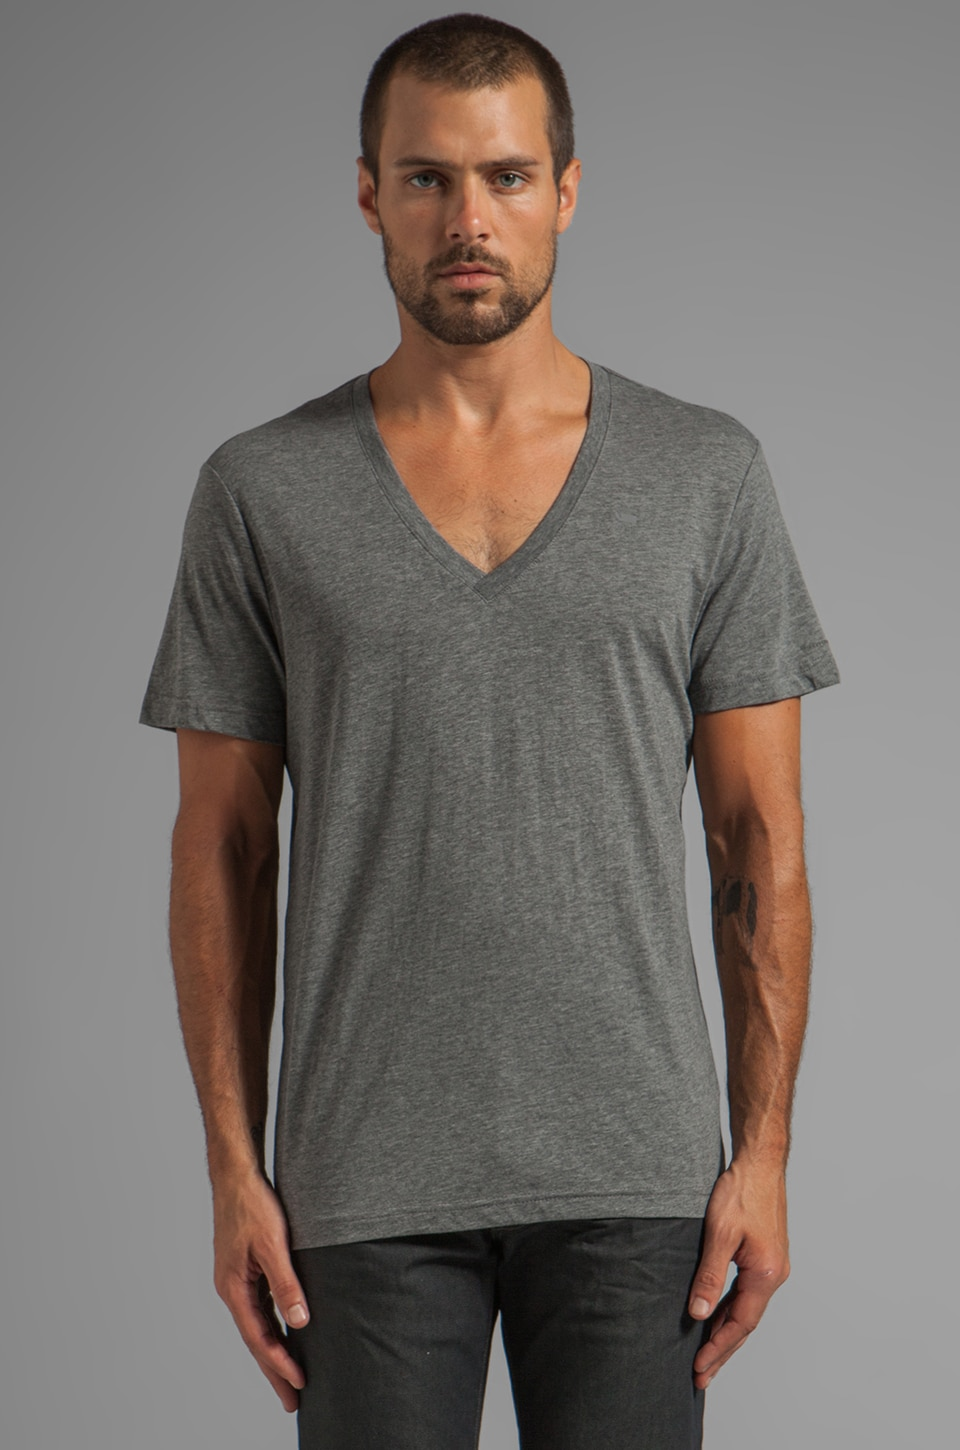 G-Star V Neck Double Pack in Castor Heather